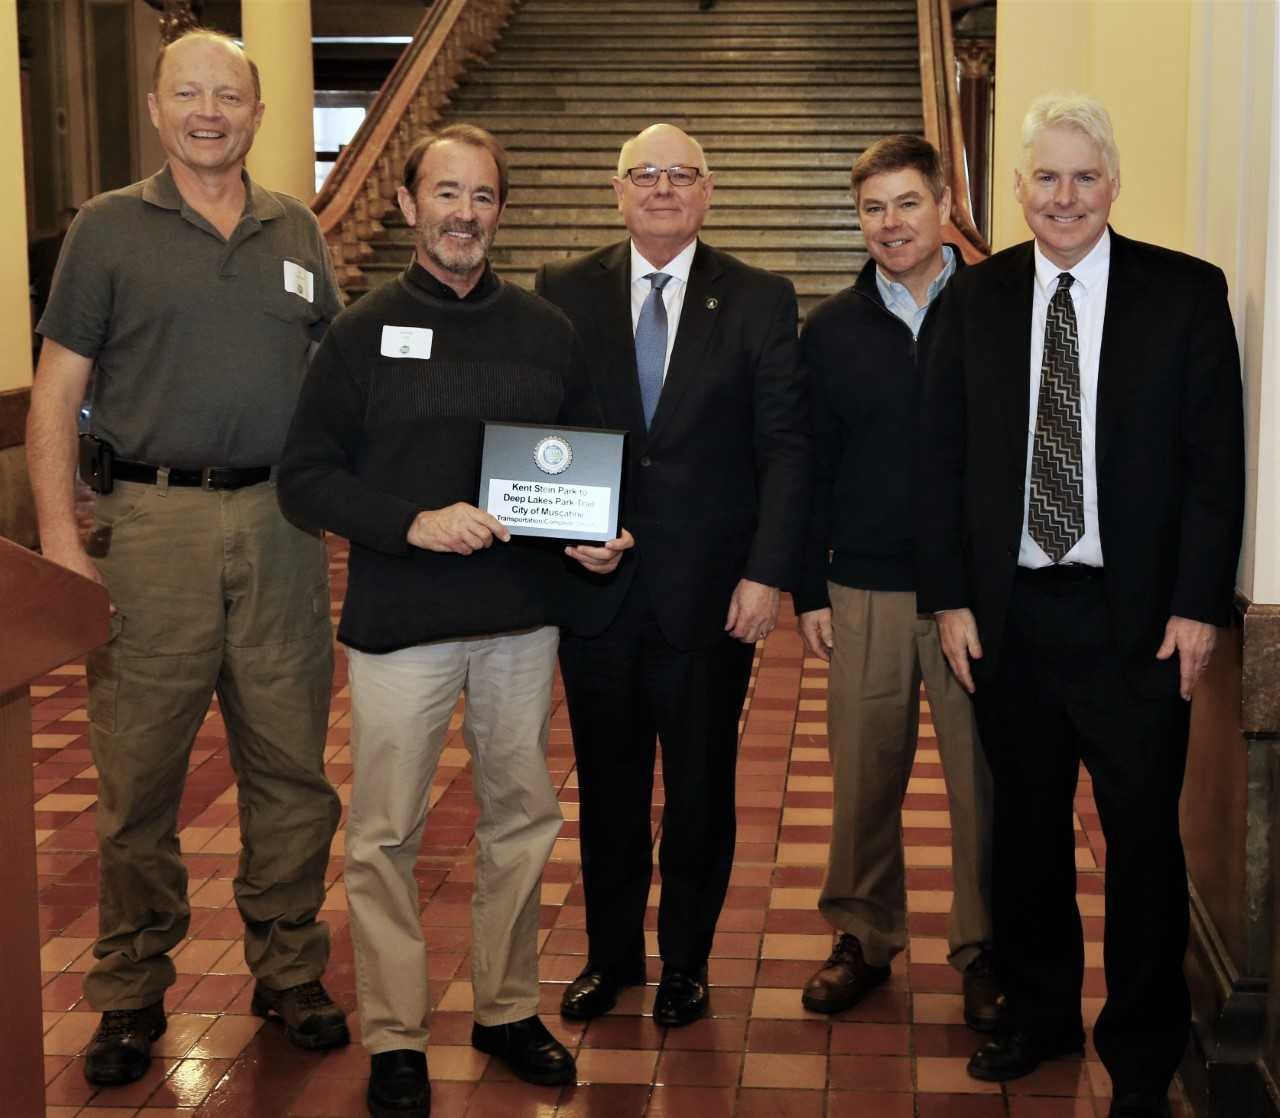 PHOTO CAPTION: Jim Edgmond (far left), city engineer, and Randy Hill, project manager, represented the City of Muscatine at the 1000 Friends of Iowa 2017 Best Development Awards presentation in Des Moines Tuesday (Jan. 16) - Photo: Maharry Photography